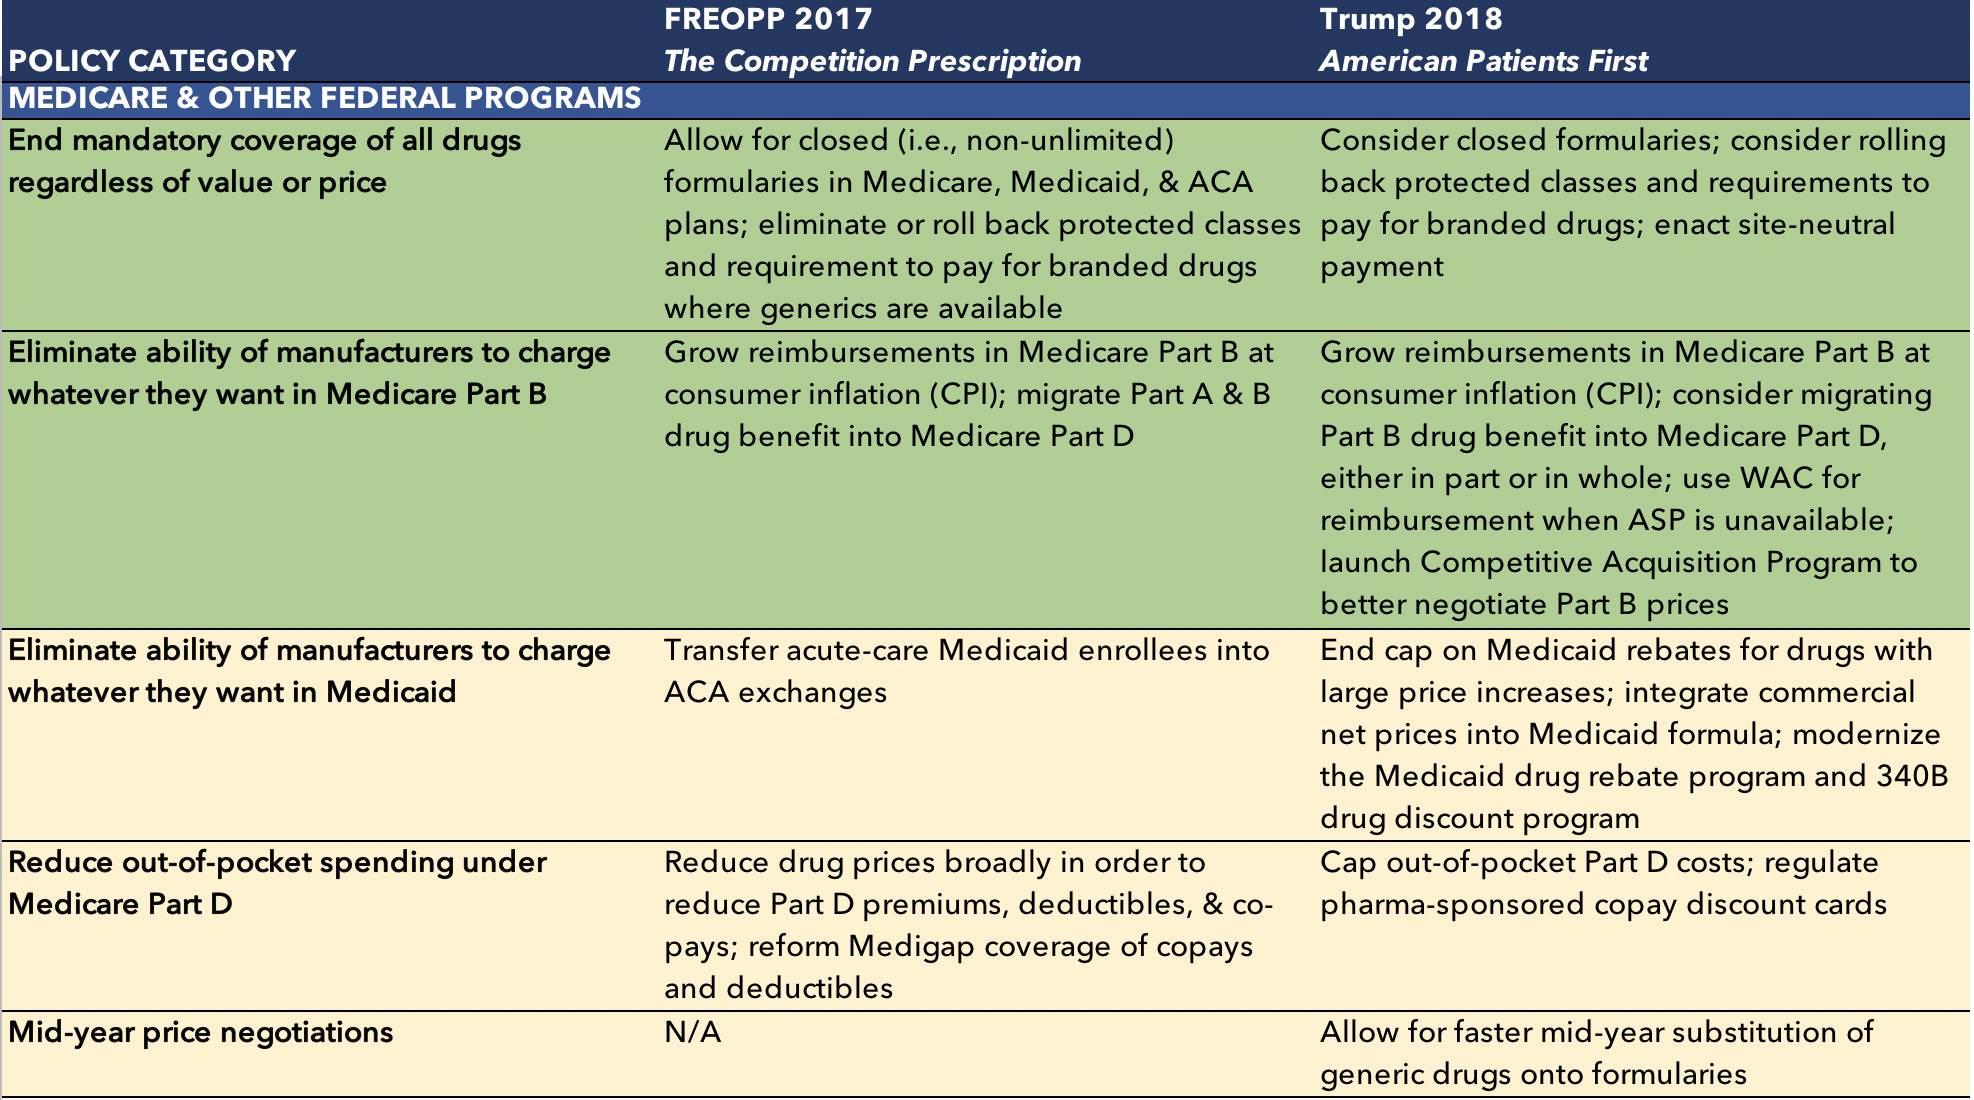 Comparing FREOPP's 'Competition Prescription' and Trump's